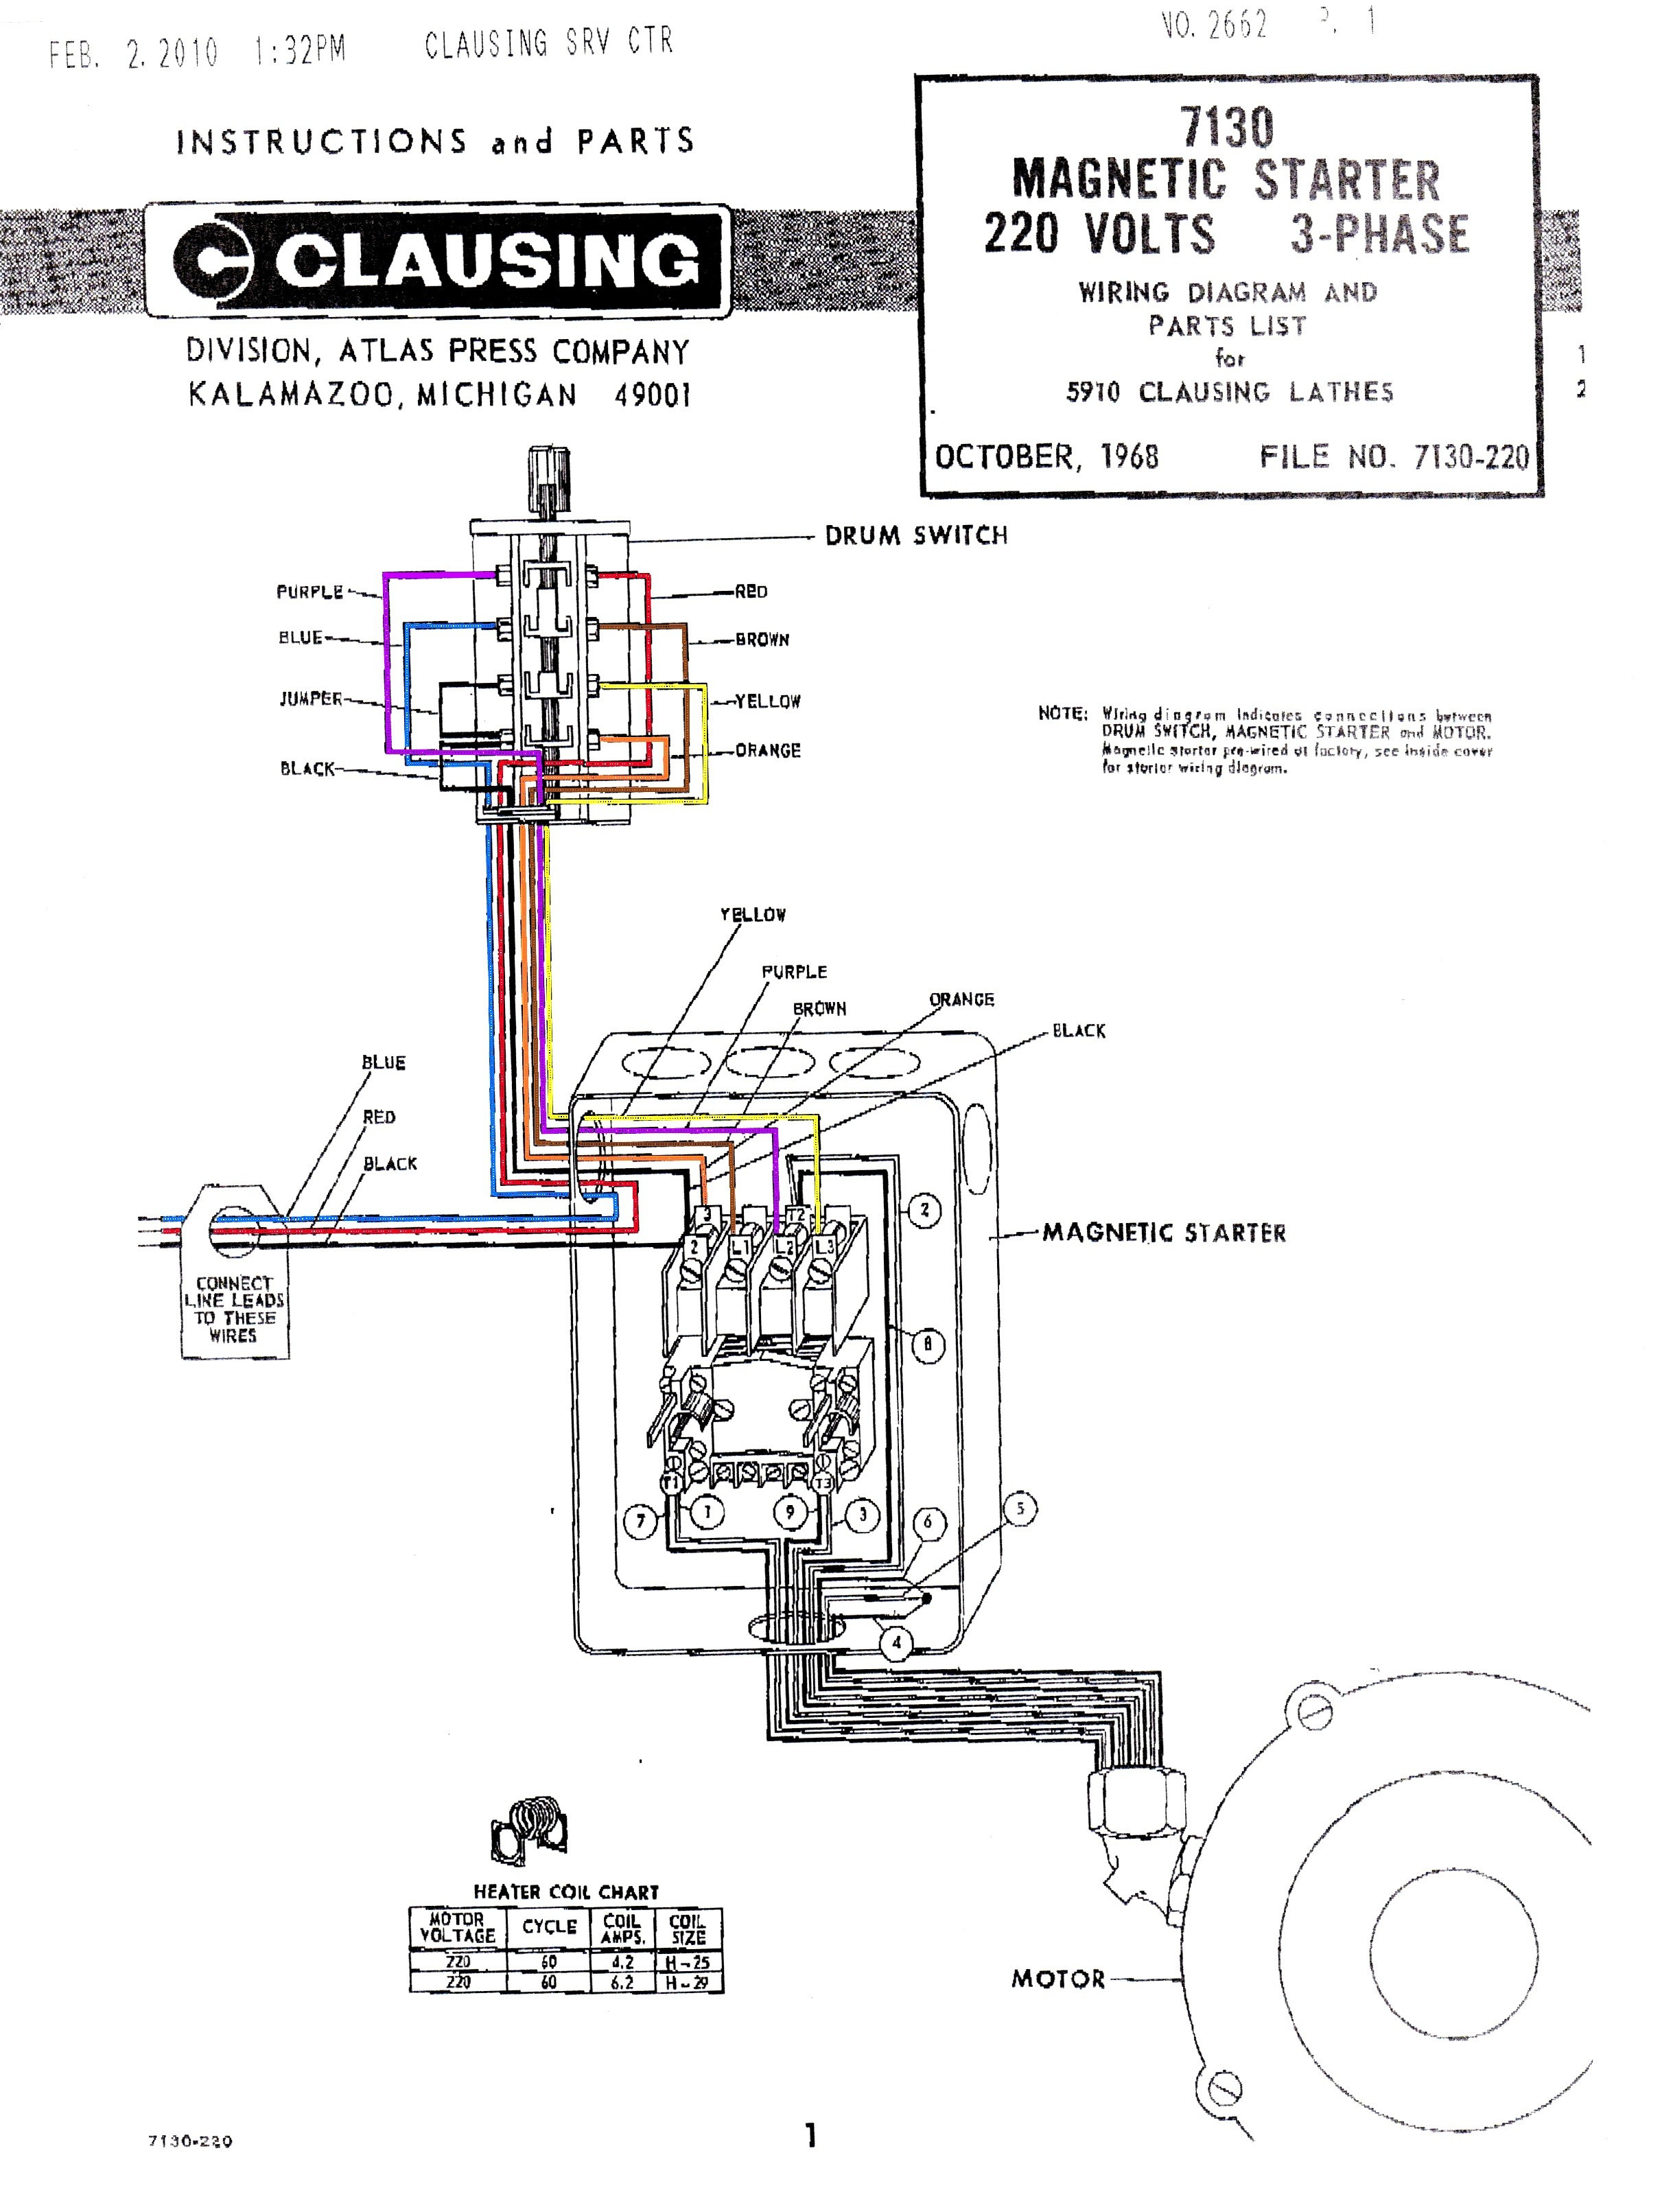 3 Phase 220v Wiring Diagram | Wiring Diagrams on 3 phase transformer wiring, 3 phase starter switch, 3 phase starter motor, 3 phase magnetic starter, 3 phase wye phasor diagram, 3 phase heater diagram, 3 phase to single phase motor wiring, three wire diagram, single line electrical diagram, 3 phase ac motor wiring, 3 phase wiring schematic, 3 phase wiring chart, 3 phase relay diagram, 3 phase voltage diagram, 3 phase power diagram,